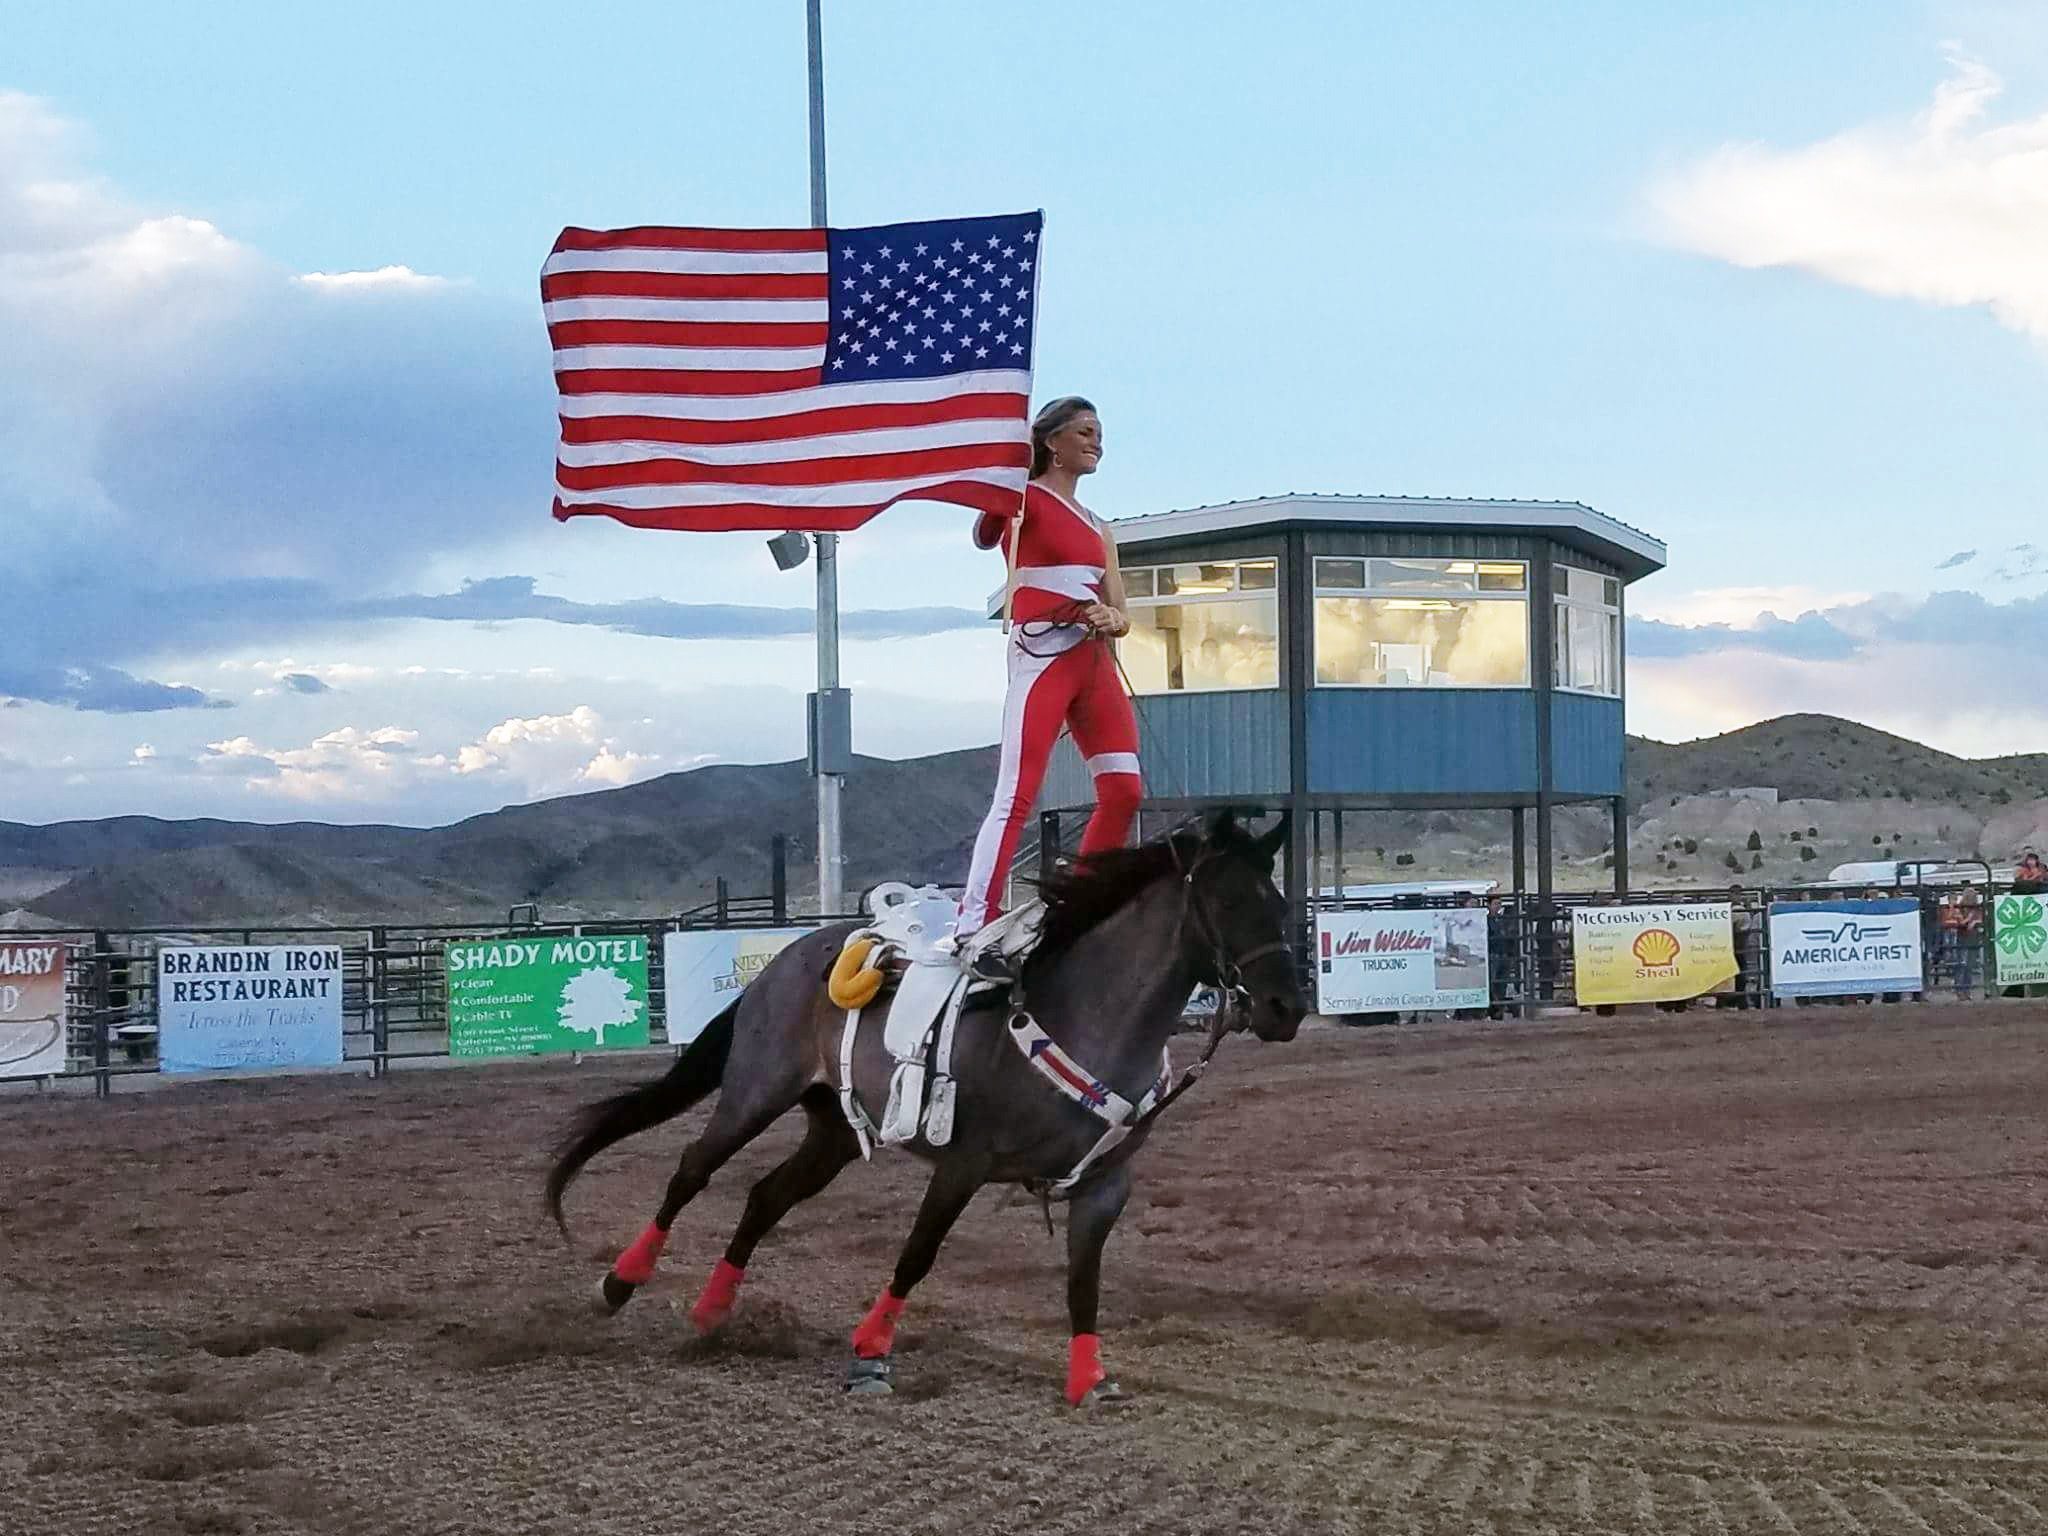 Riata Ranch Cowboy Girls put on Impressive Performance